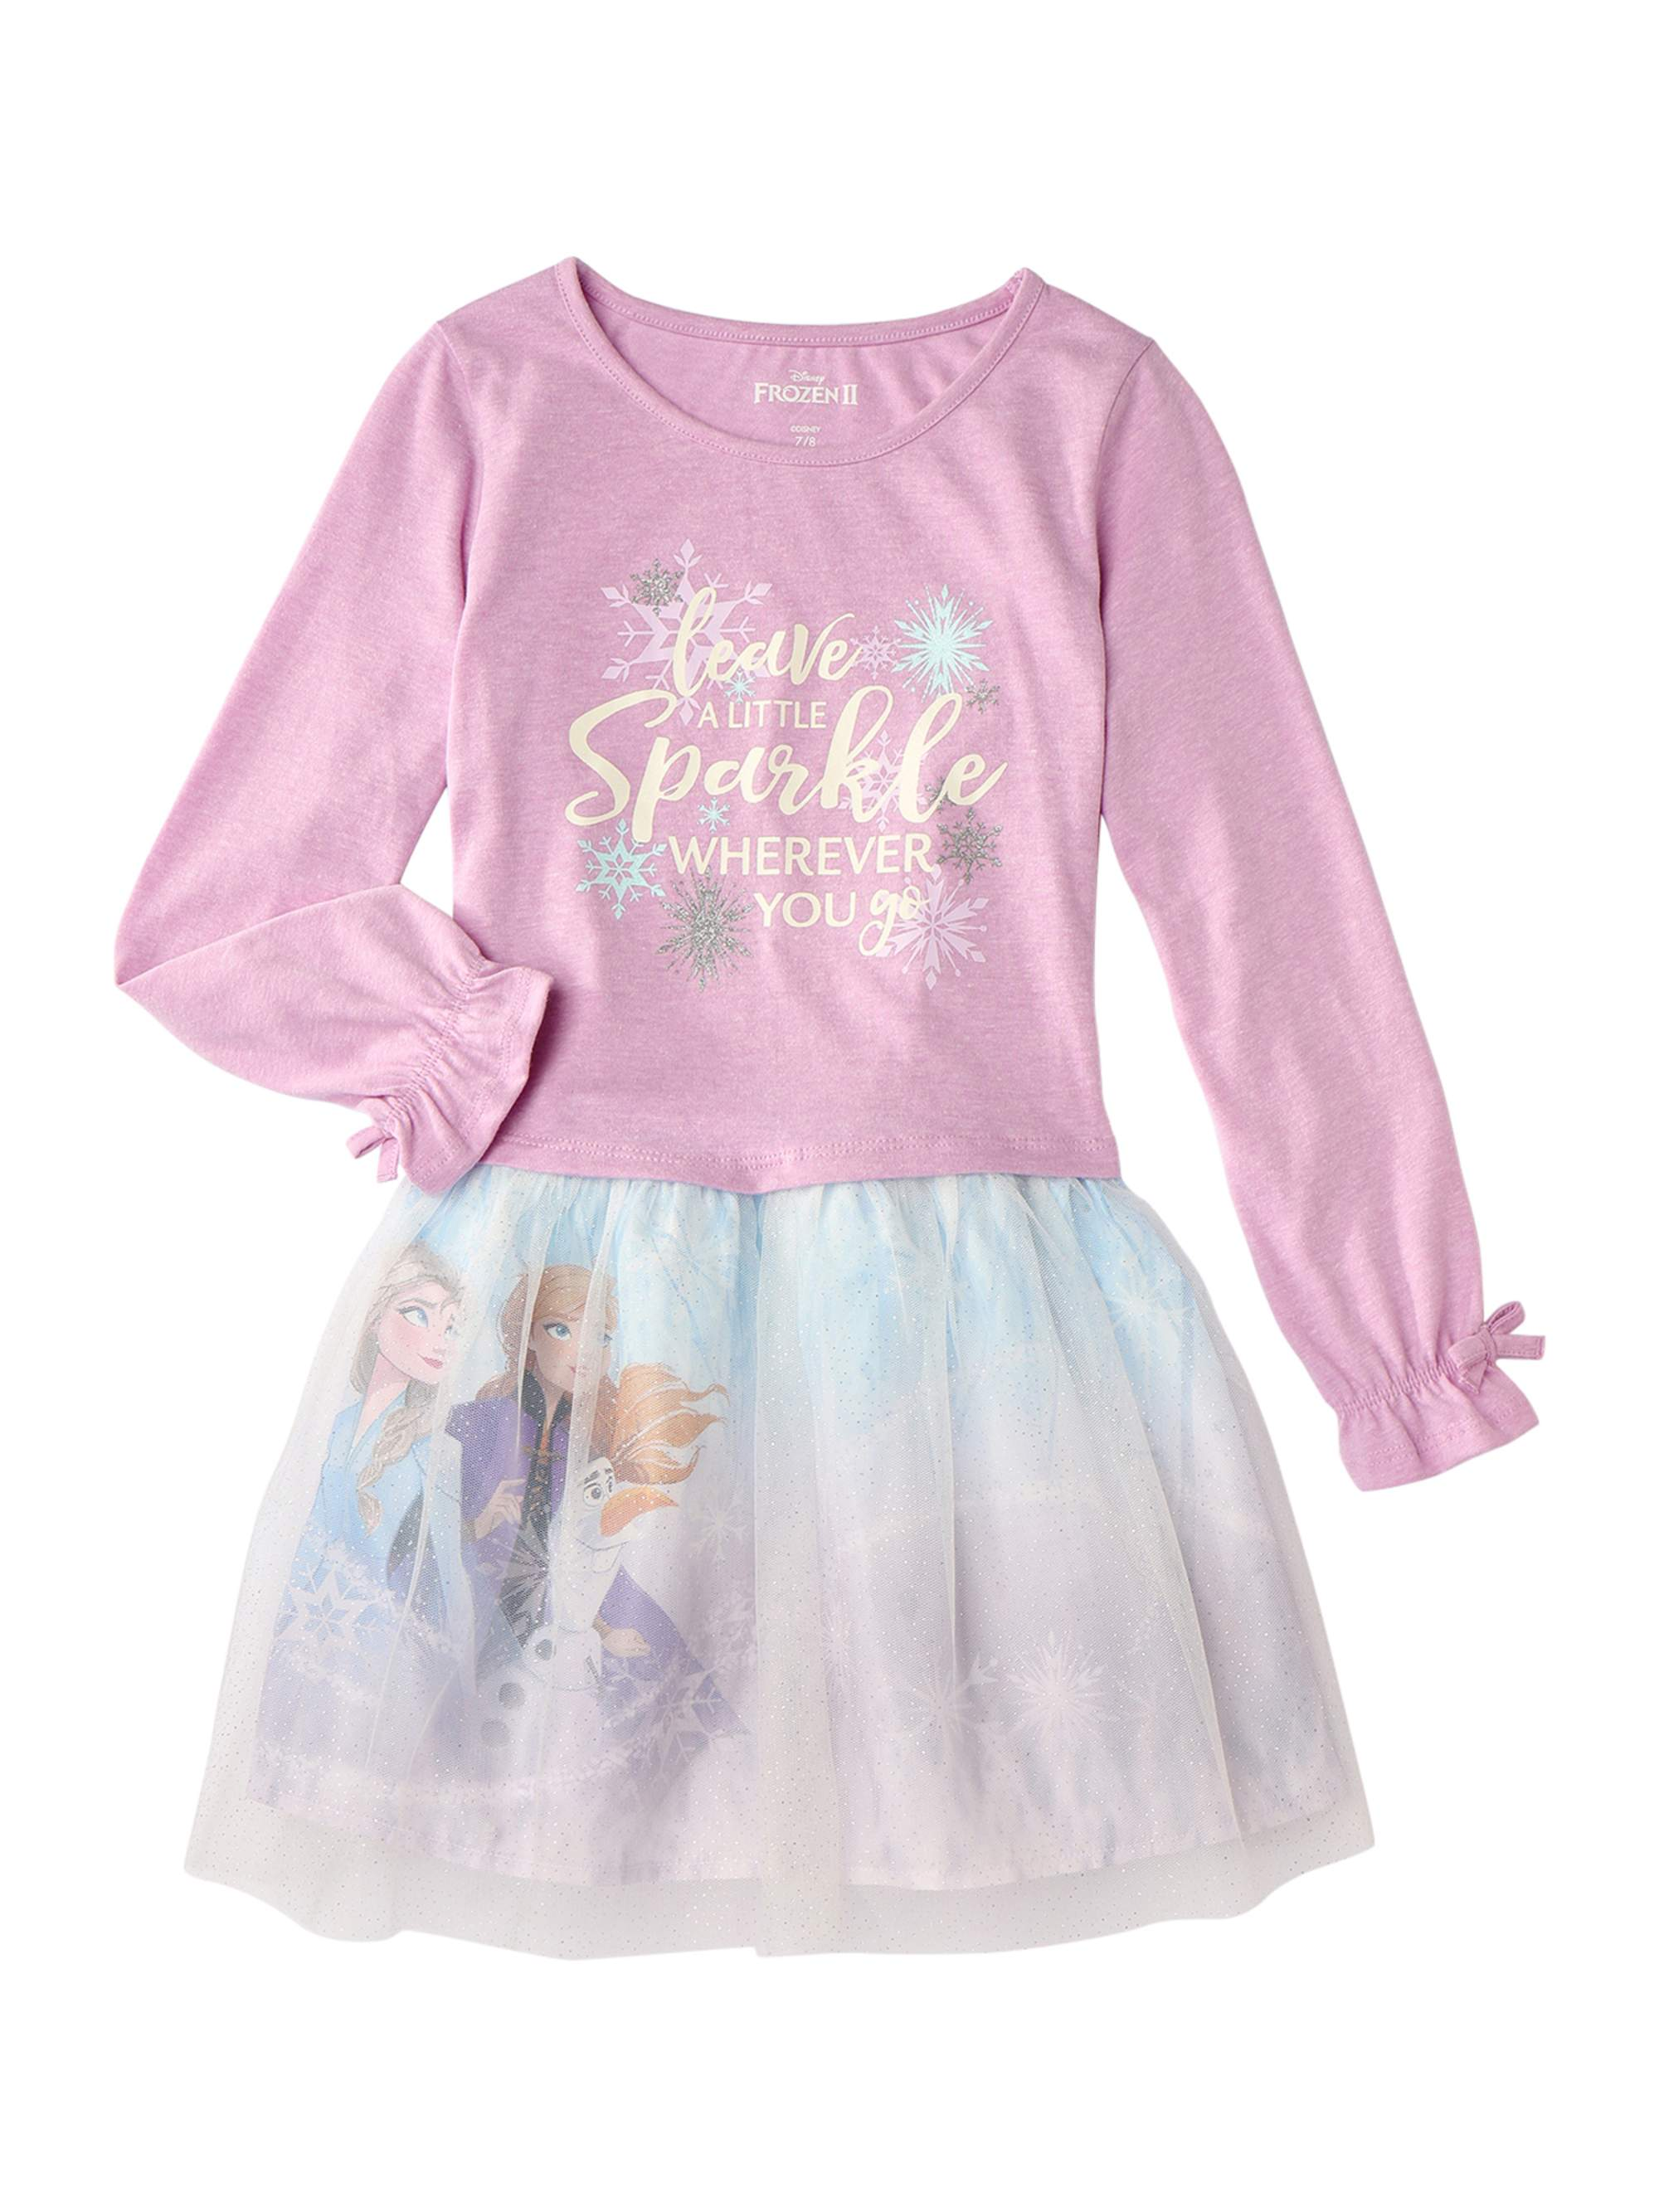 Make Your Own Magic Disney Frozen Elsa /& Anna Fleece Pajama Set Long Sleeve 8